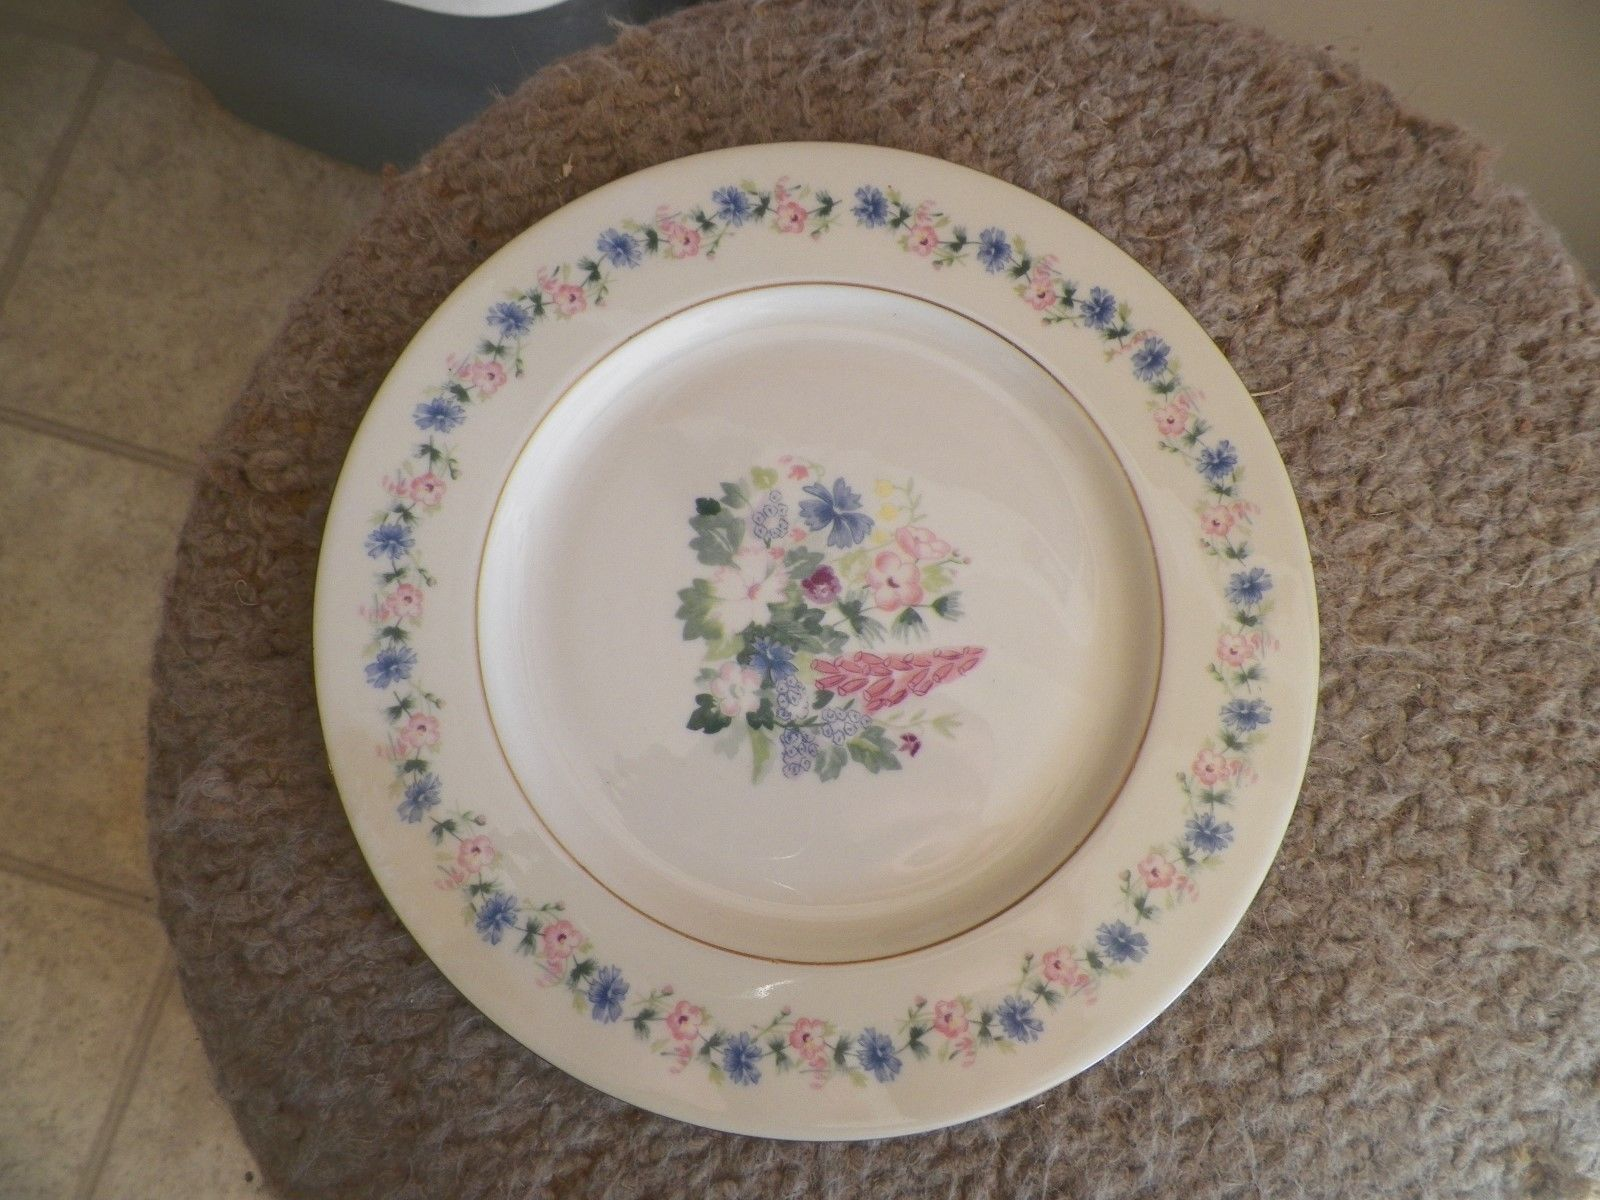 Theodore Haviland Fox Glove luncheon plate 2 available - $18.27